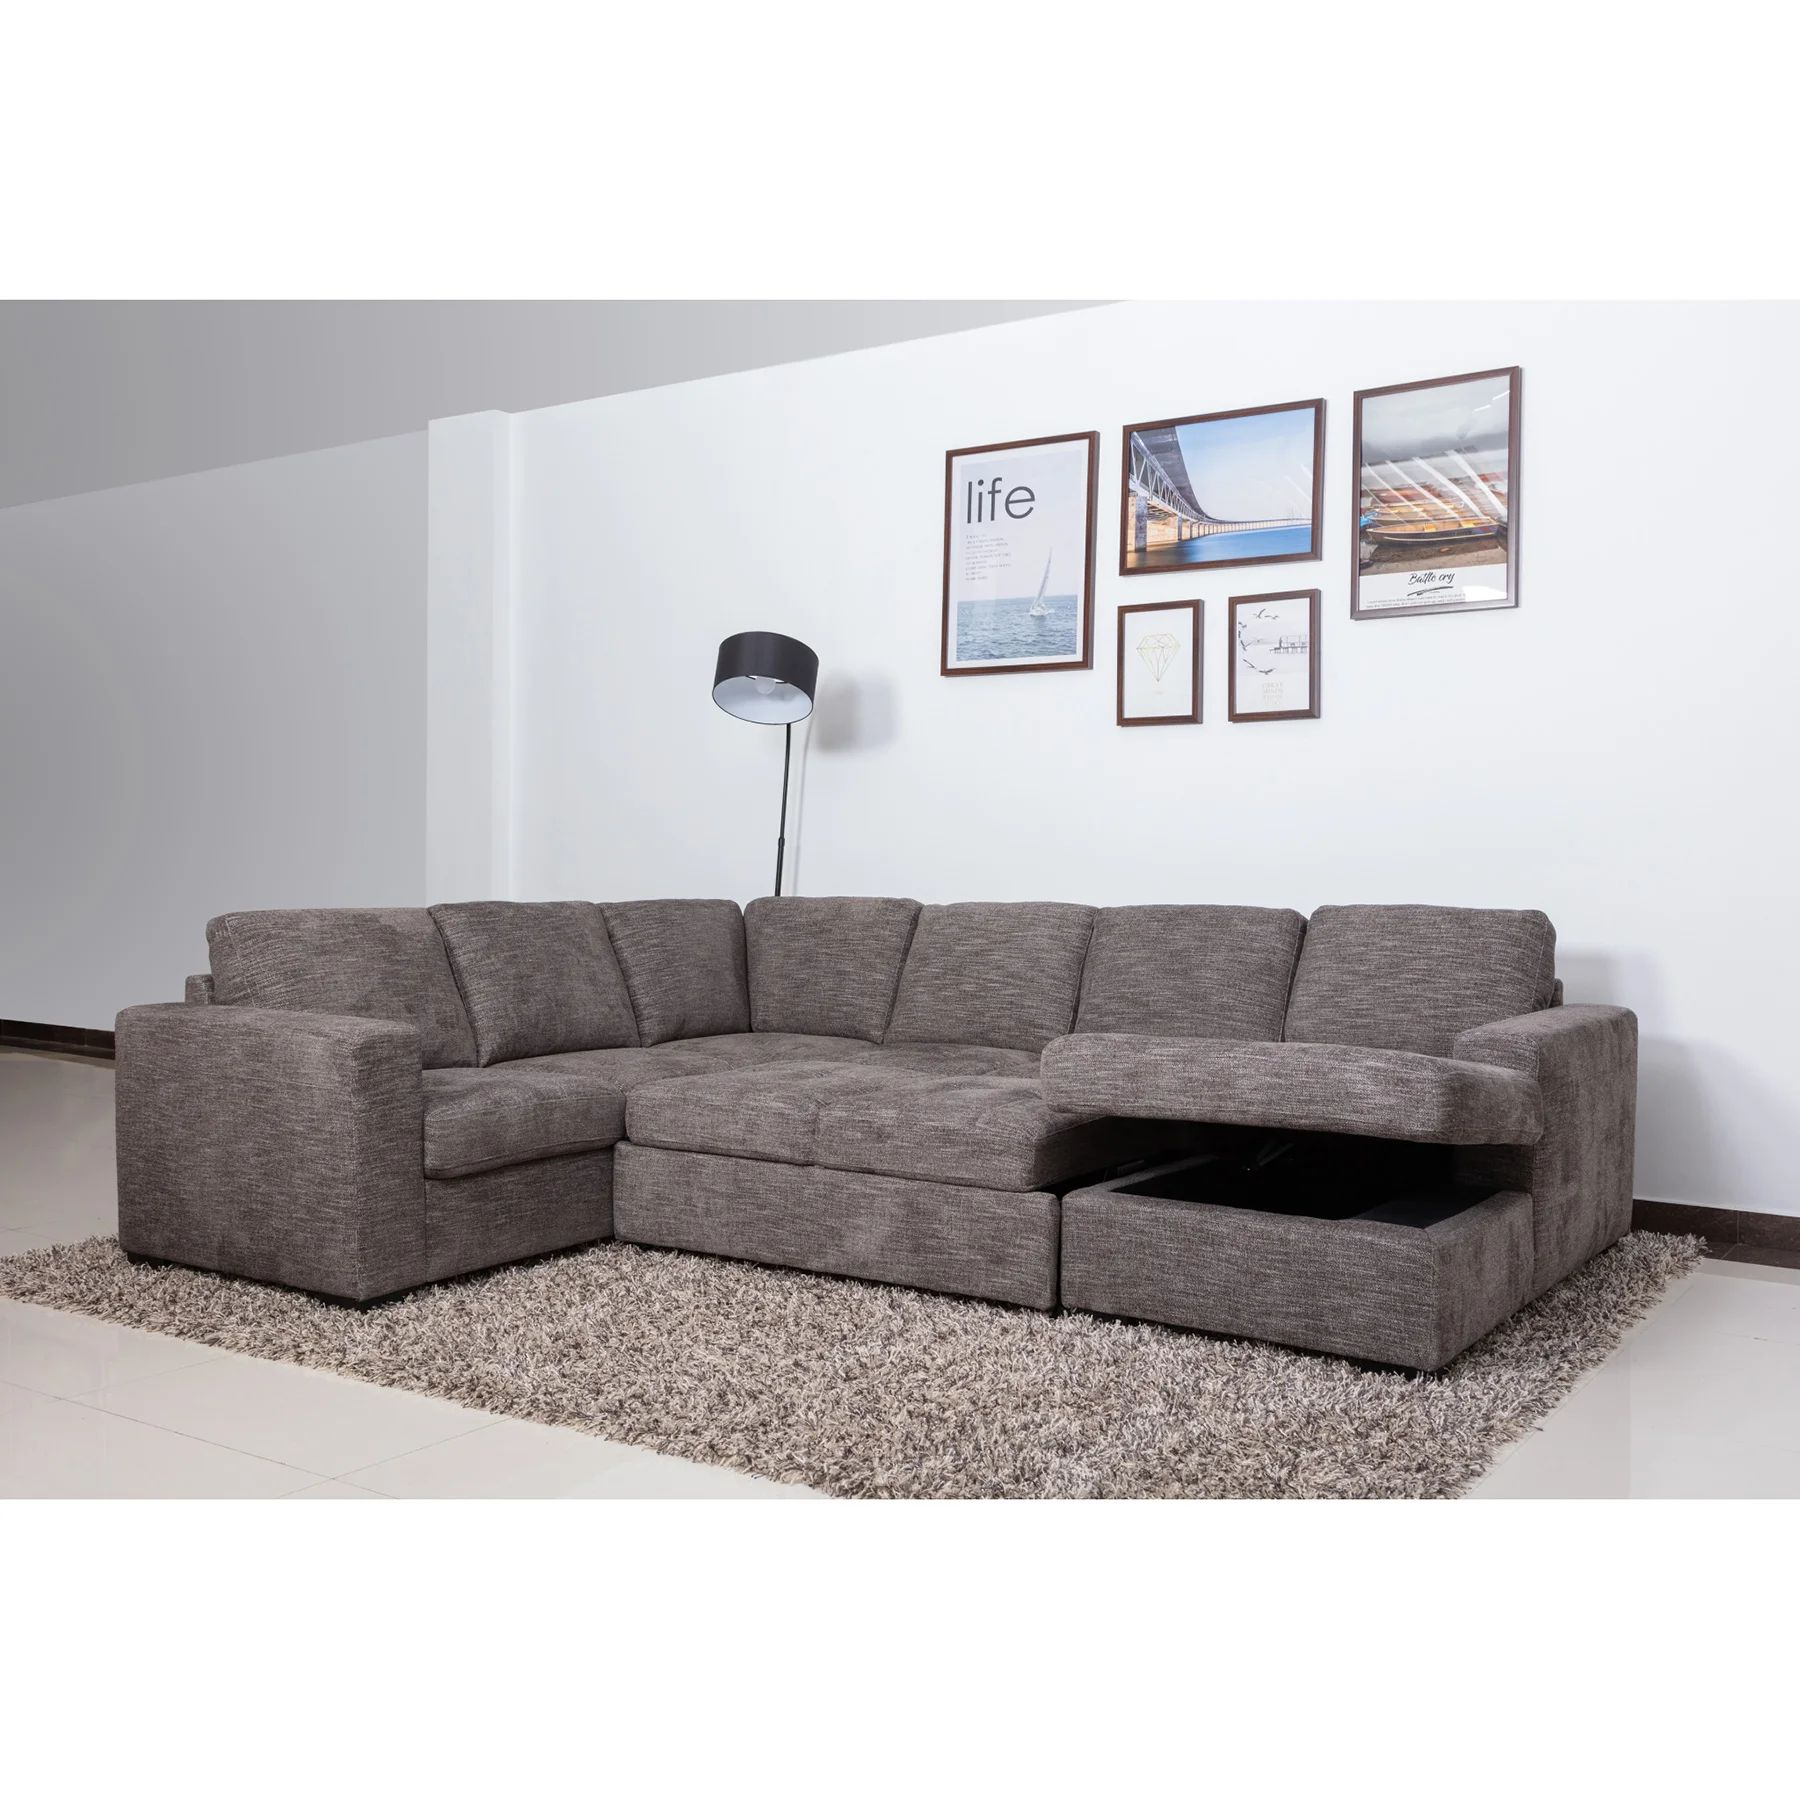 claire 3 pc pewter right side facing chaise sectional